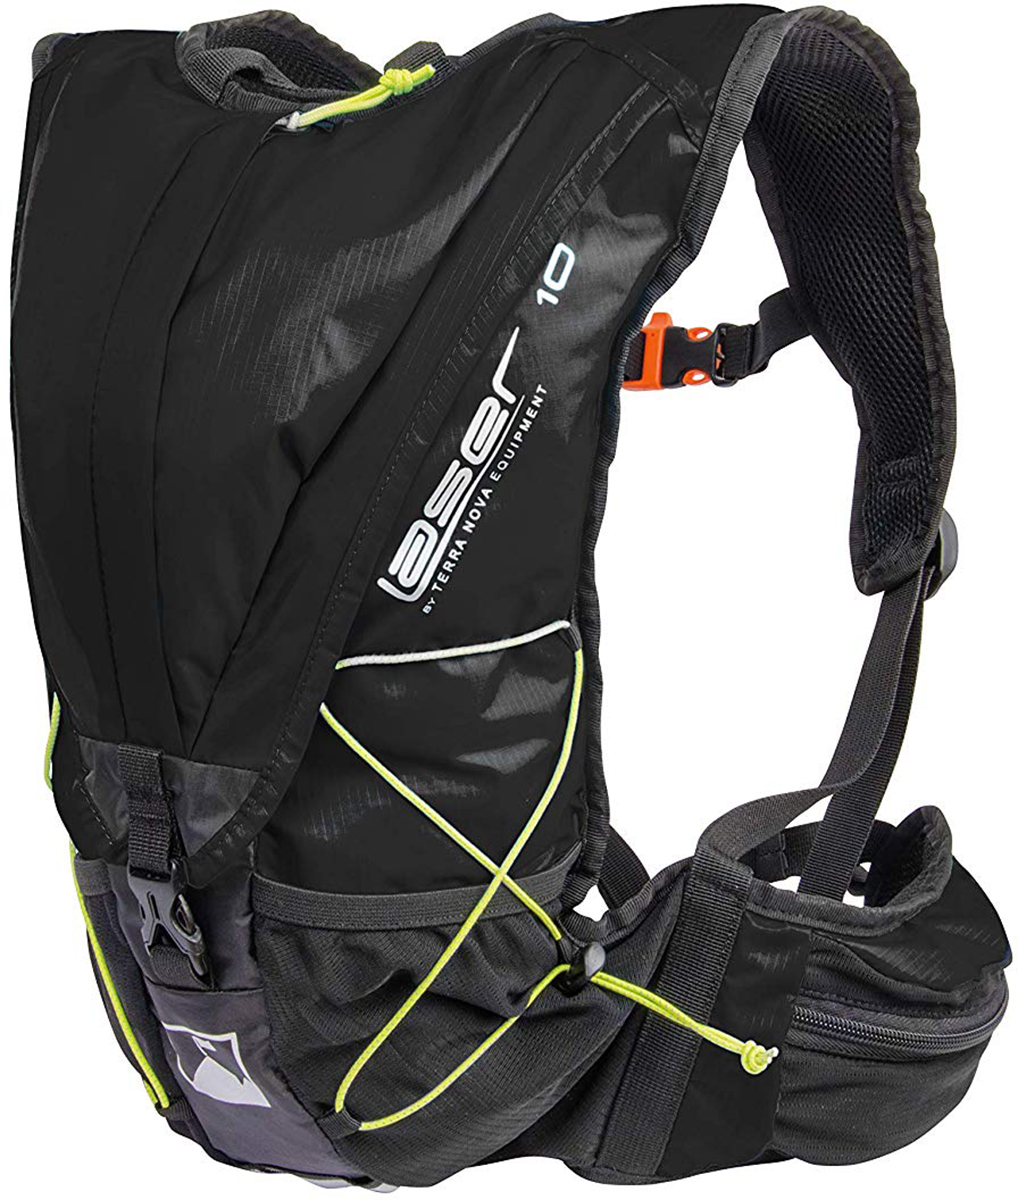 Terra Nova Laser 10 Backpack | Travel bags